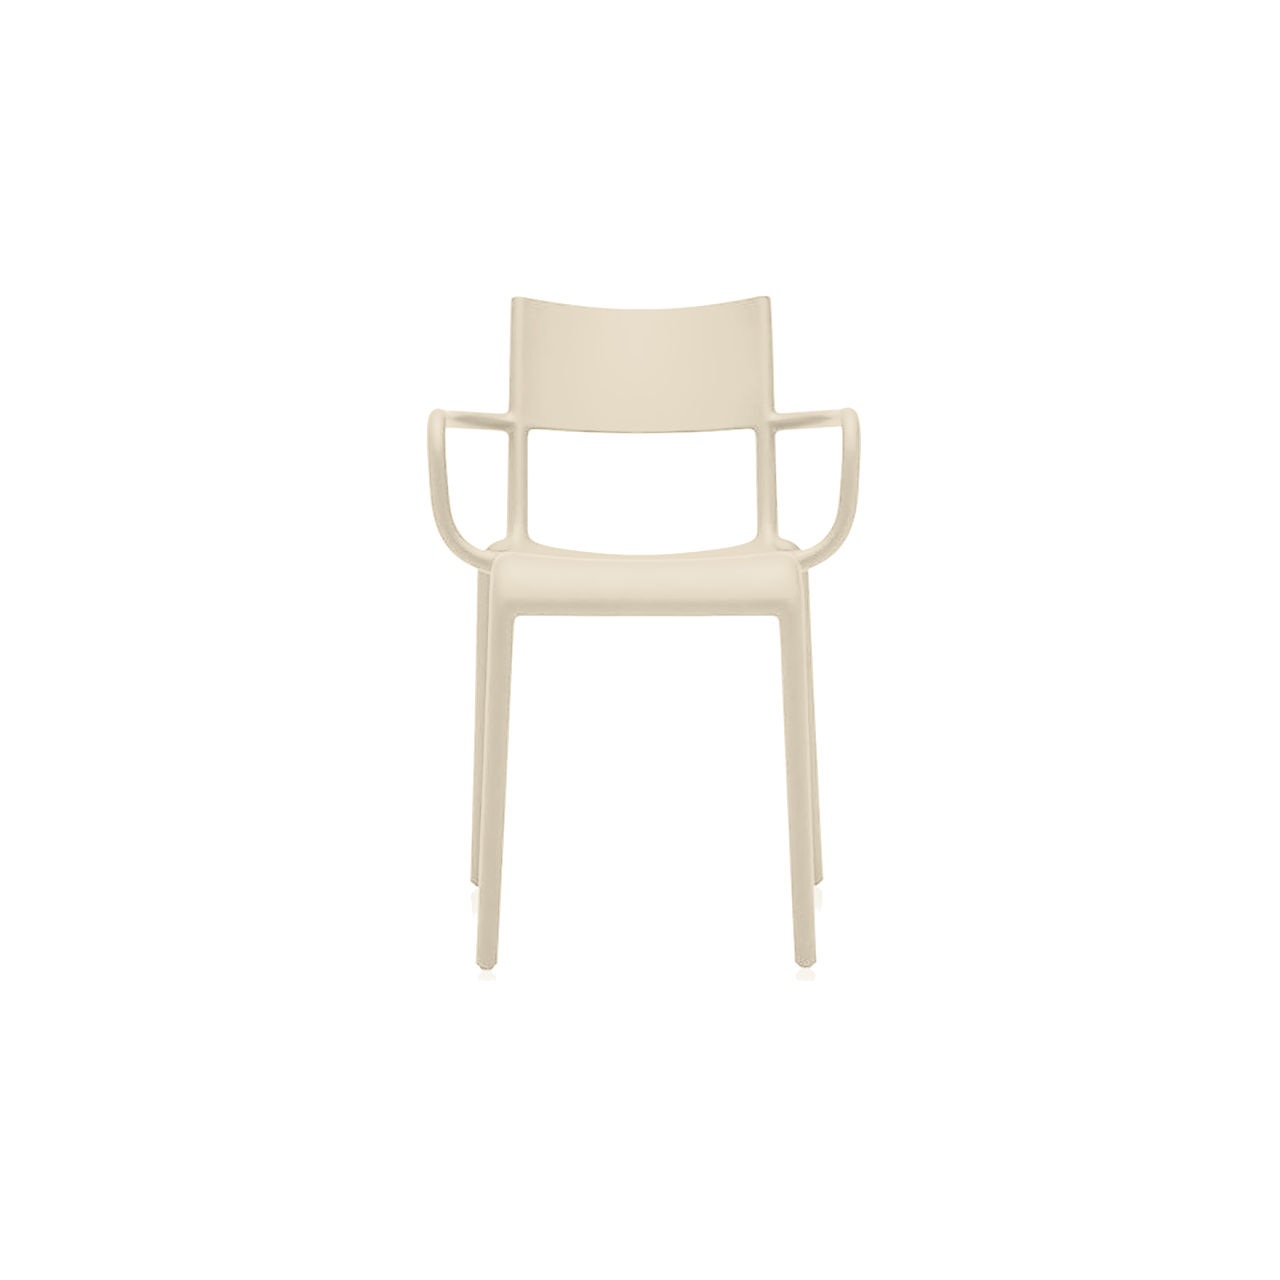 Generic Chair A Set of 2 in Dove by Kartell